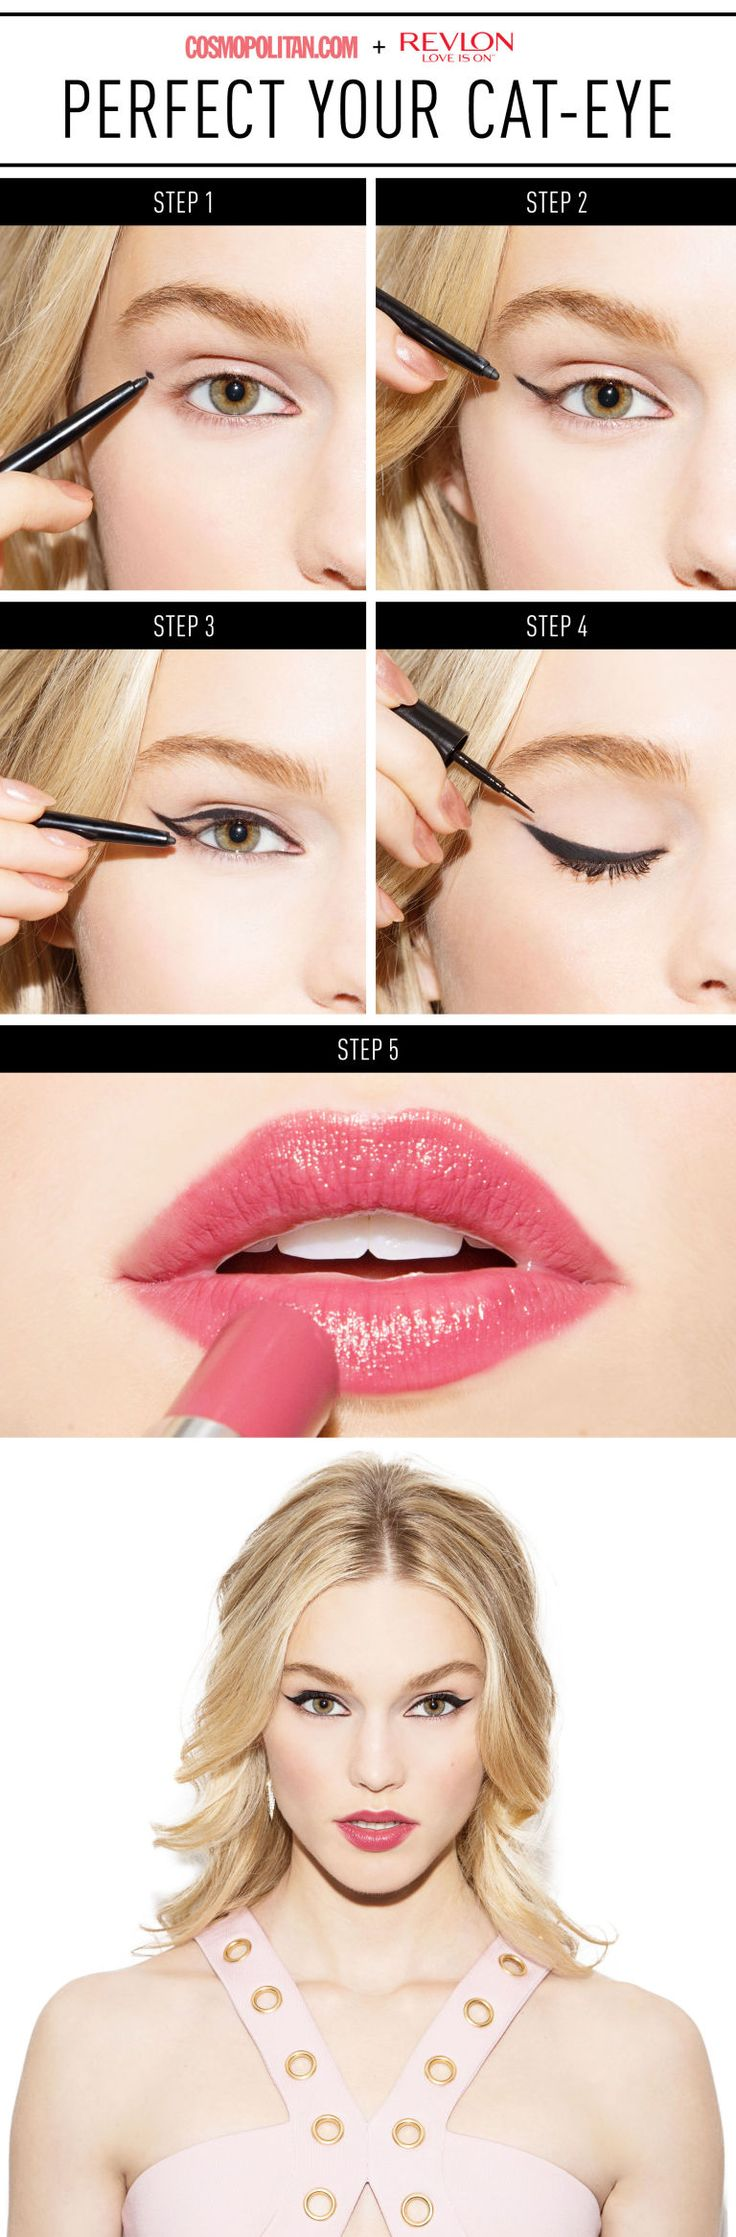 So here's the deal: You need to nail your cat-eye. Do that and you will always be stunning. Haven't figured it out yet? Makeup artist Kristen Gallegos has a goof-proof trick that will help you perfect your winged eye without breaking a sweat.